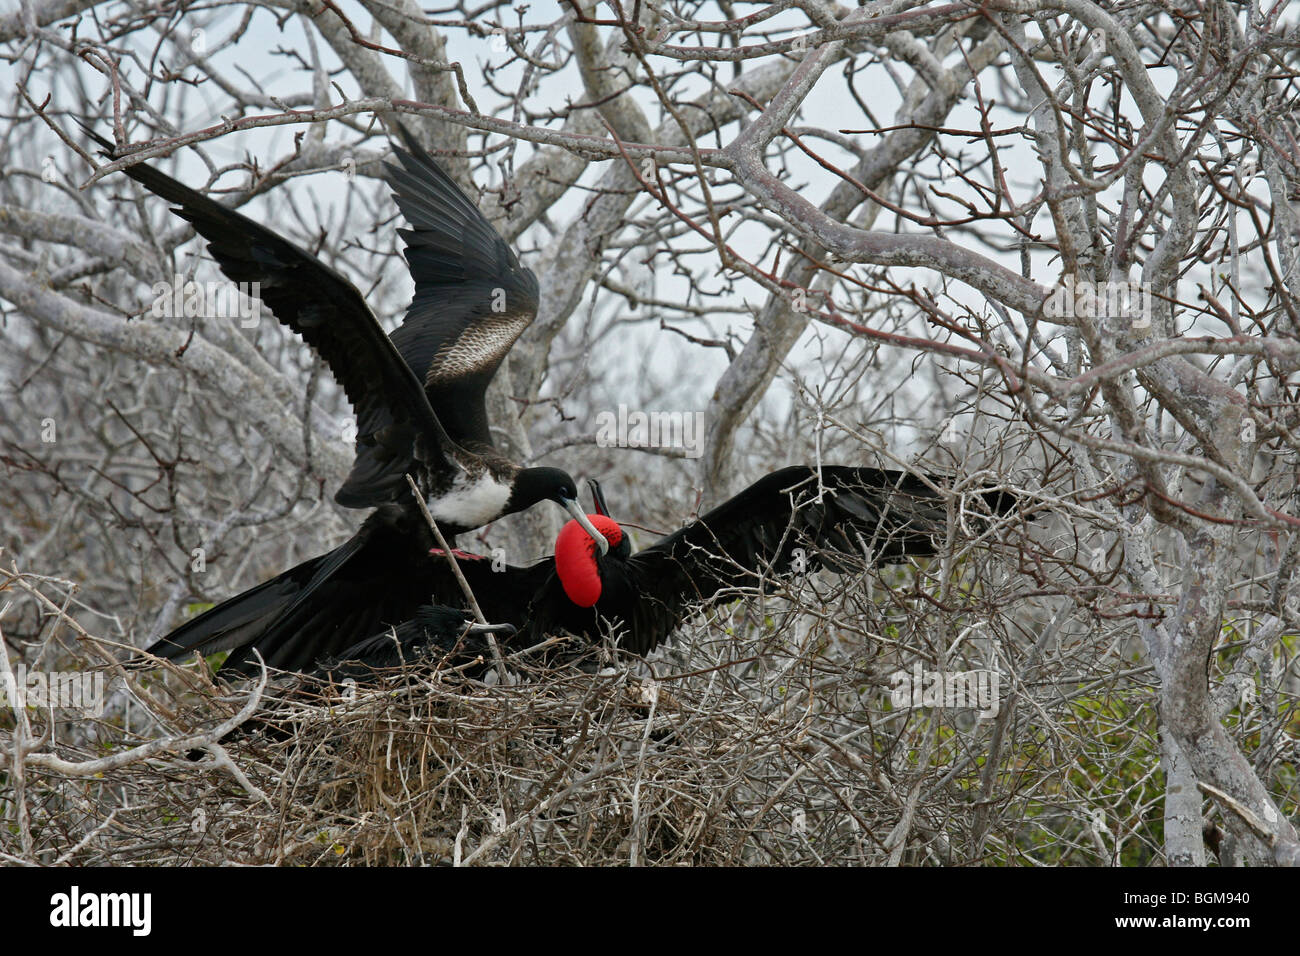 Great frigatebird / great frigate bird (Fregata minor) male showing courtship display on nest in tree, Galápagos - Stock Image